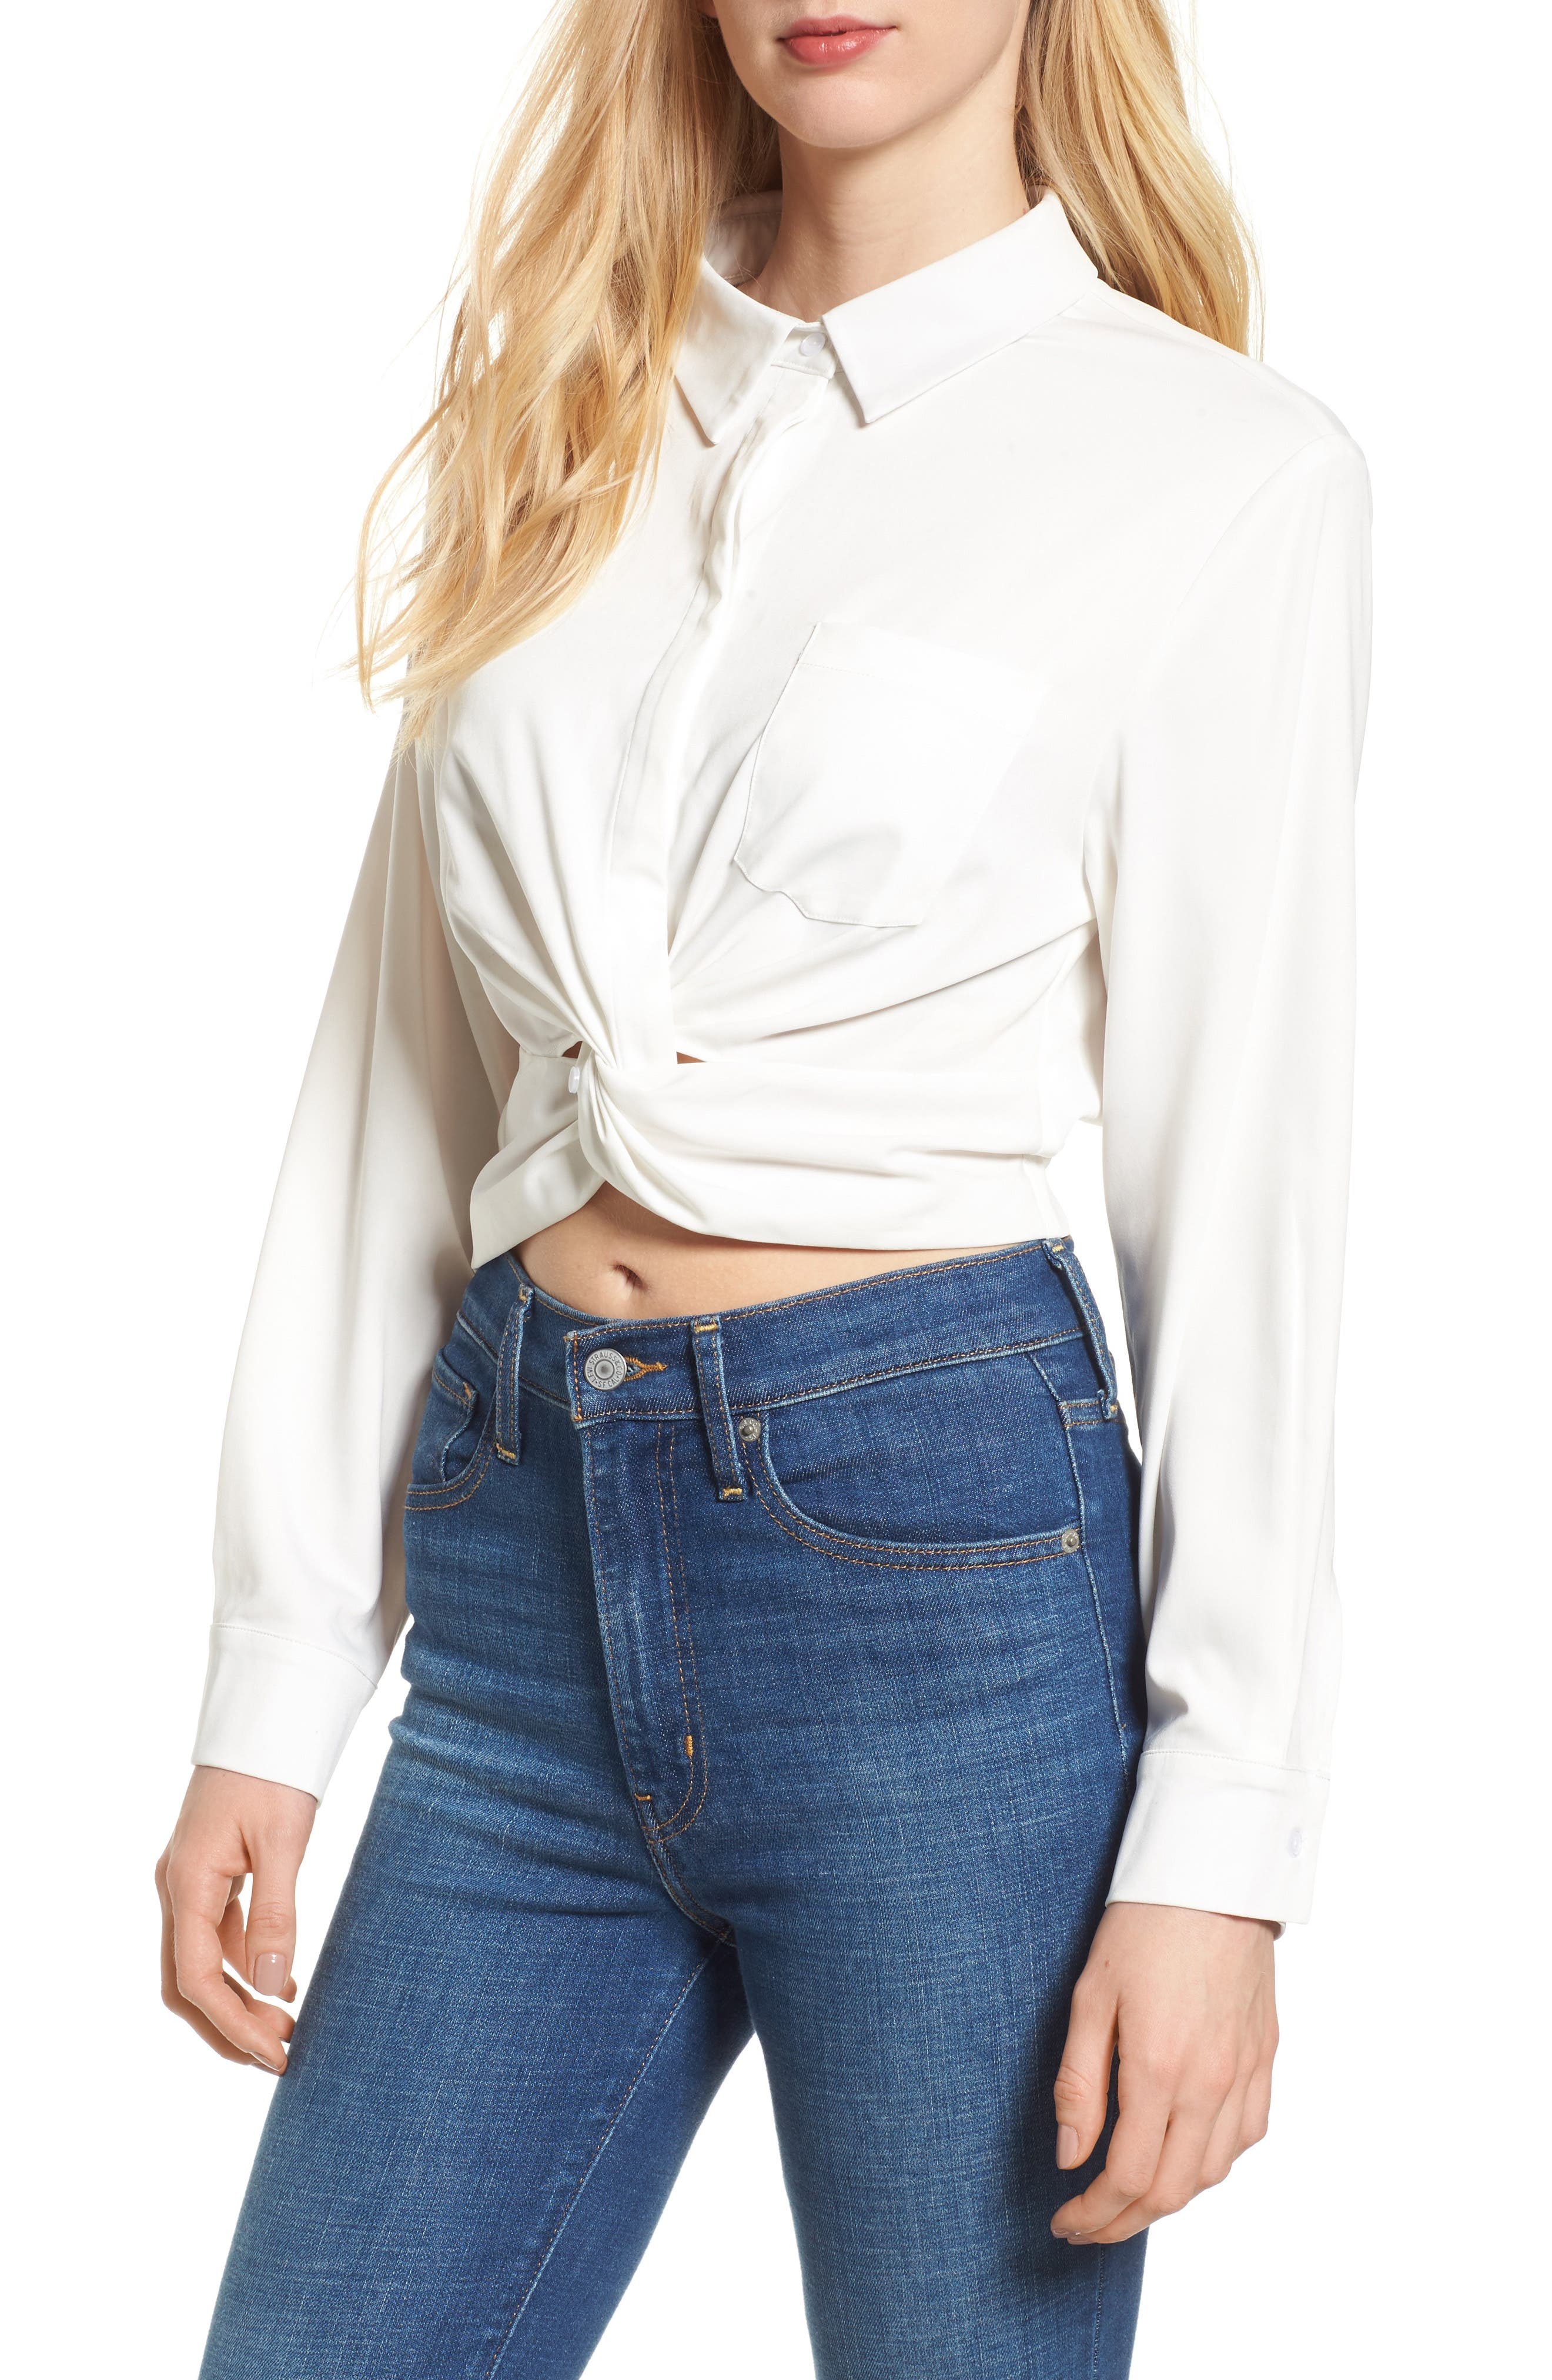 Bishop + Young Alexandra Twist Blouse,                         Main,                         color,